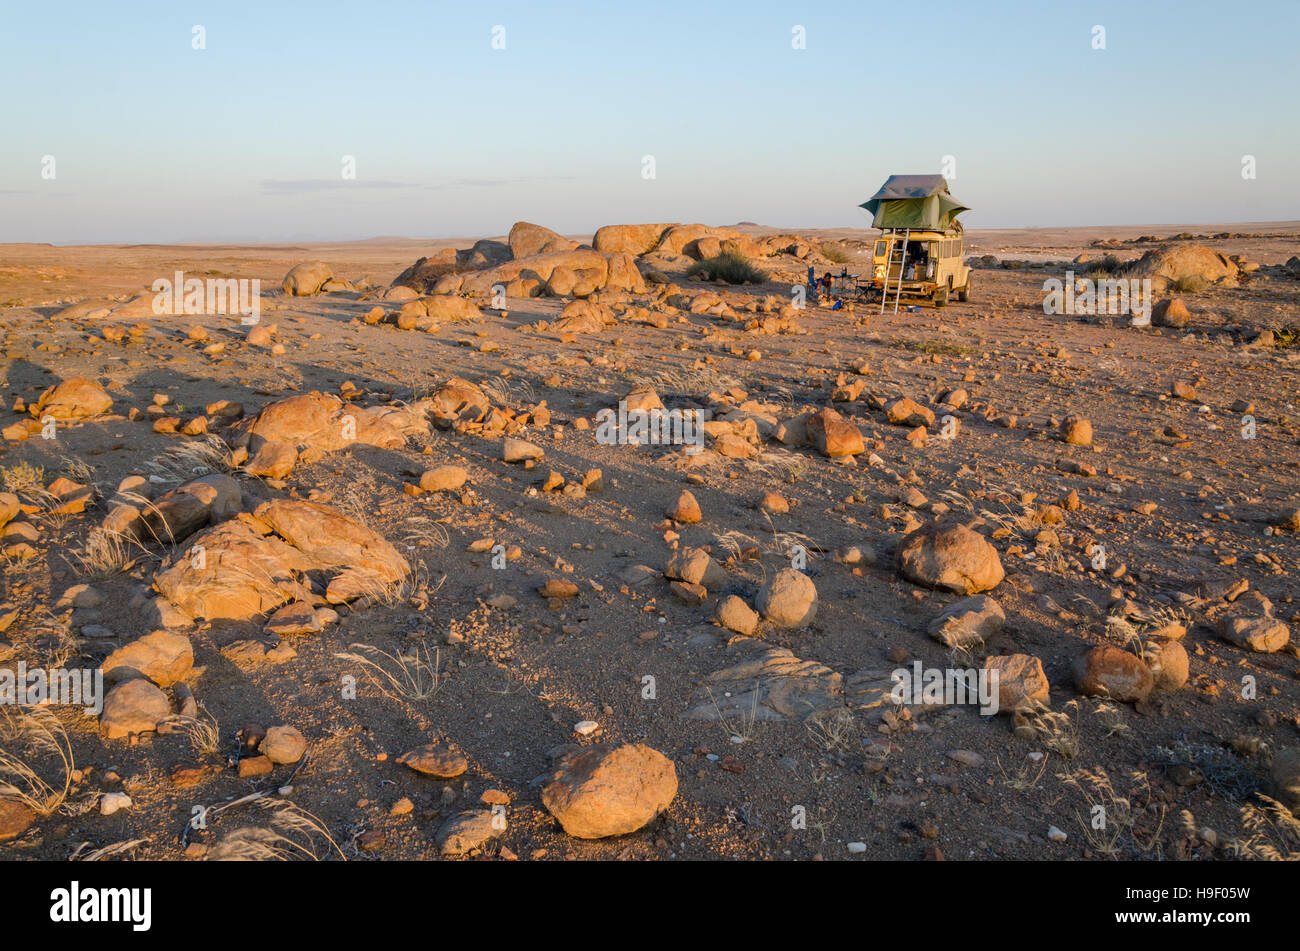 Camping with a 4x4 and roof top tent in a rocky part of Angola's Namib Desert. - Stock Image